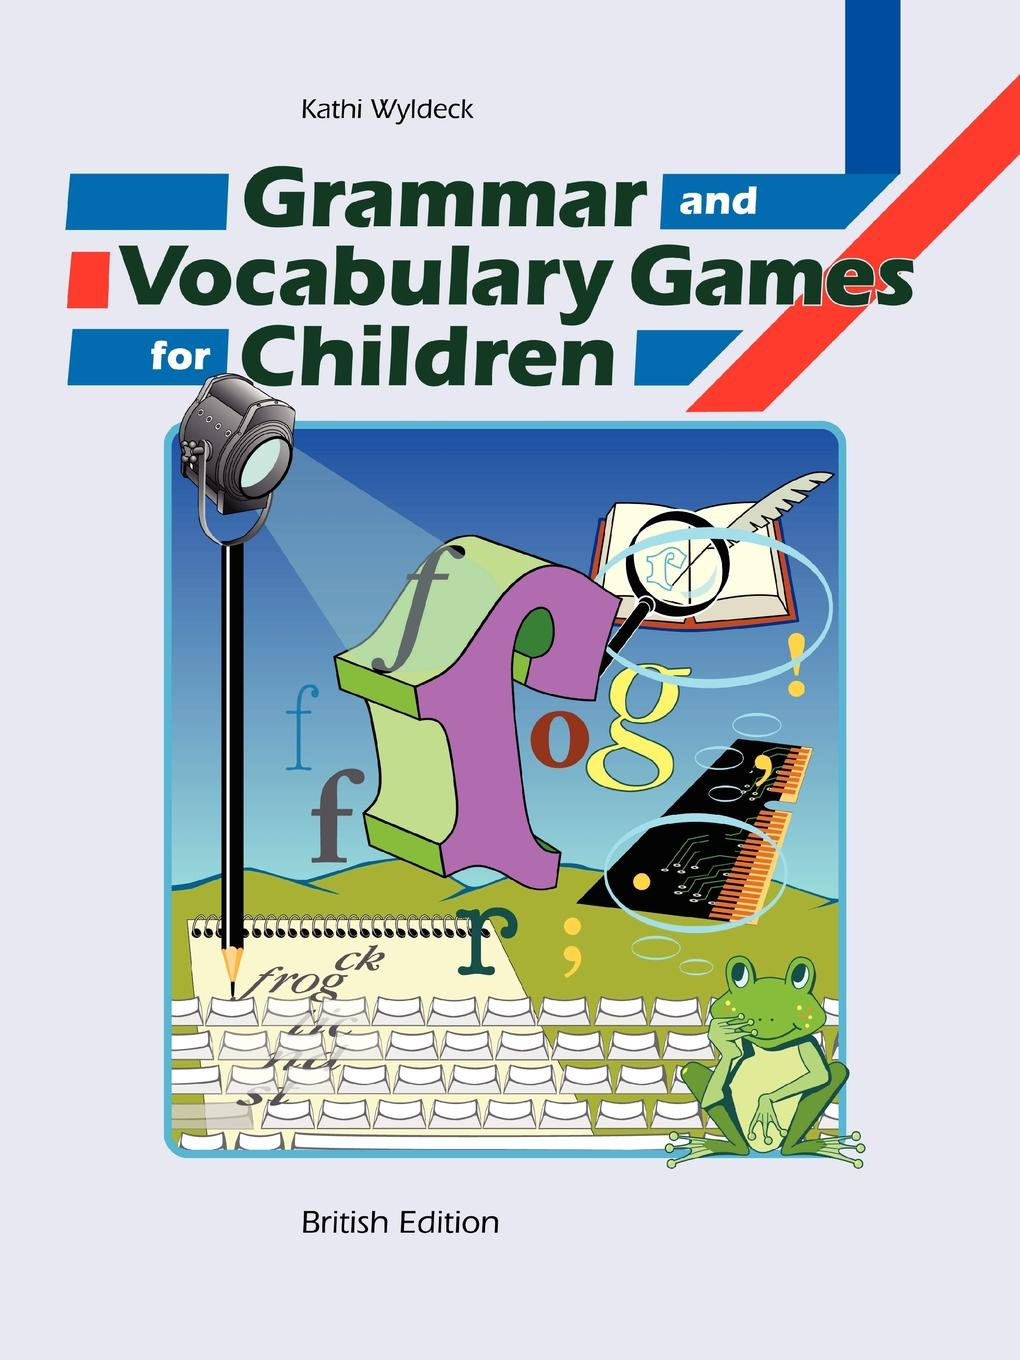 Kathi Wyldeck Grammar and Vocabulary Games for Children gordon lewis games for children